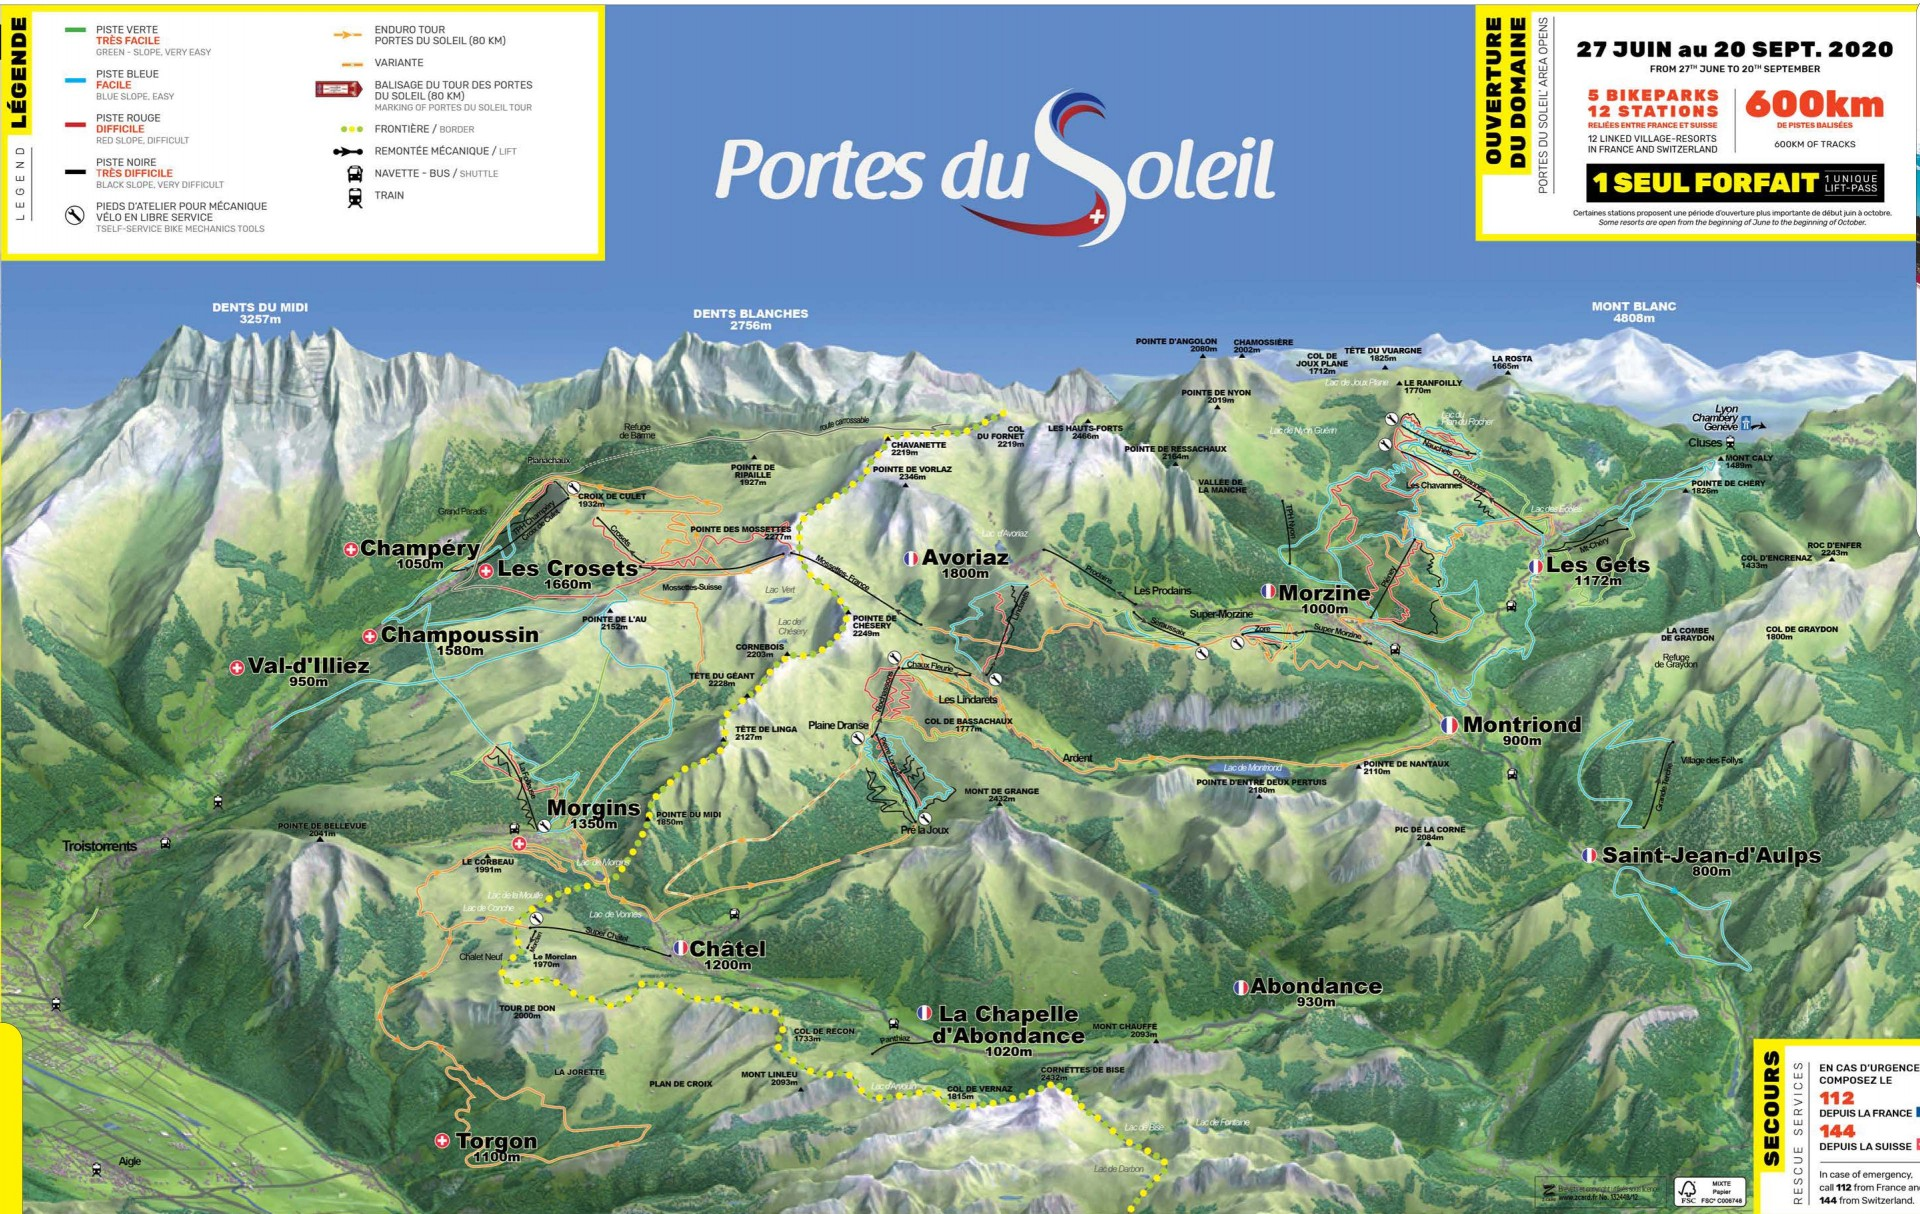 Map of the MTB circuits in the Portes du Soleil